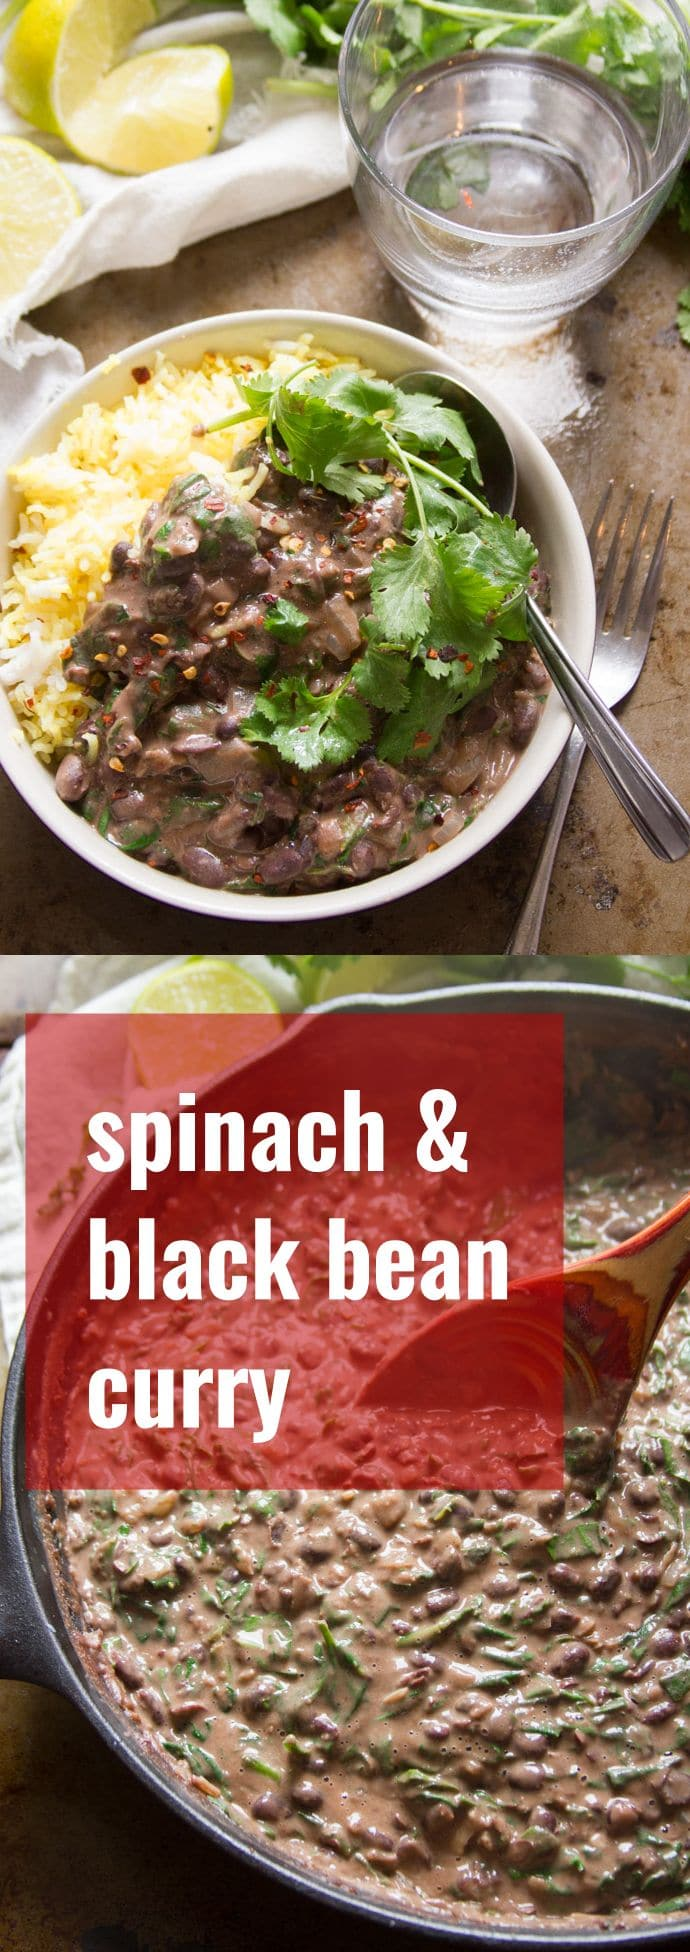 Spinach, Coconut & Black Bean Curry